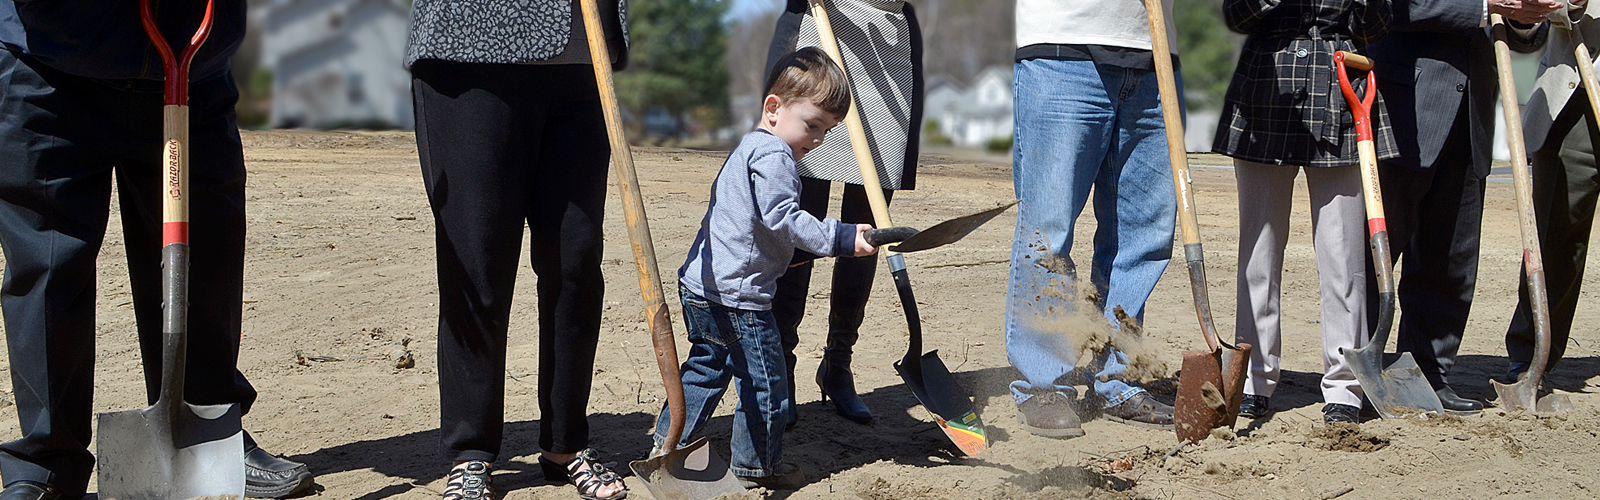 Three adults' legs and one child digging dirt with shovels at a ground breaking.